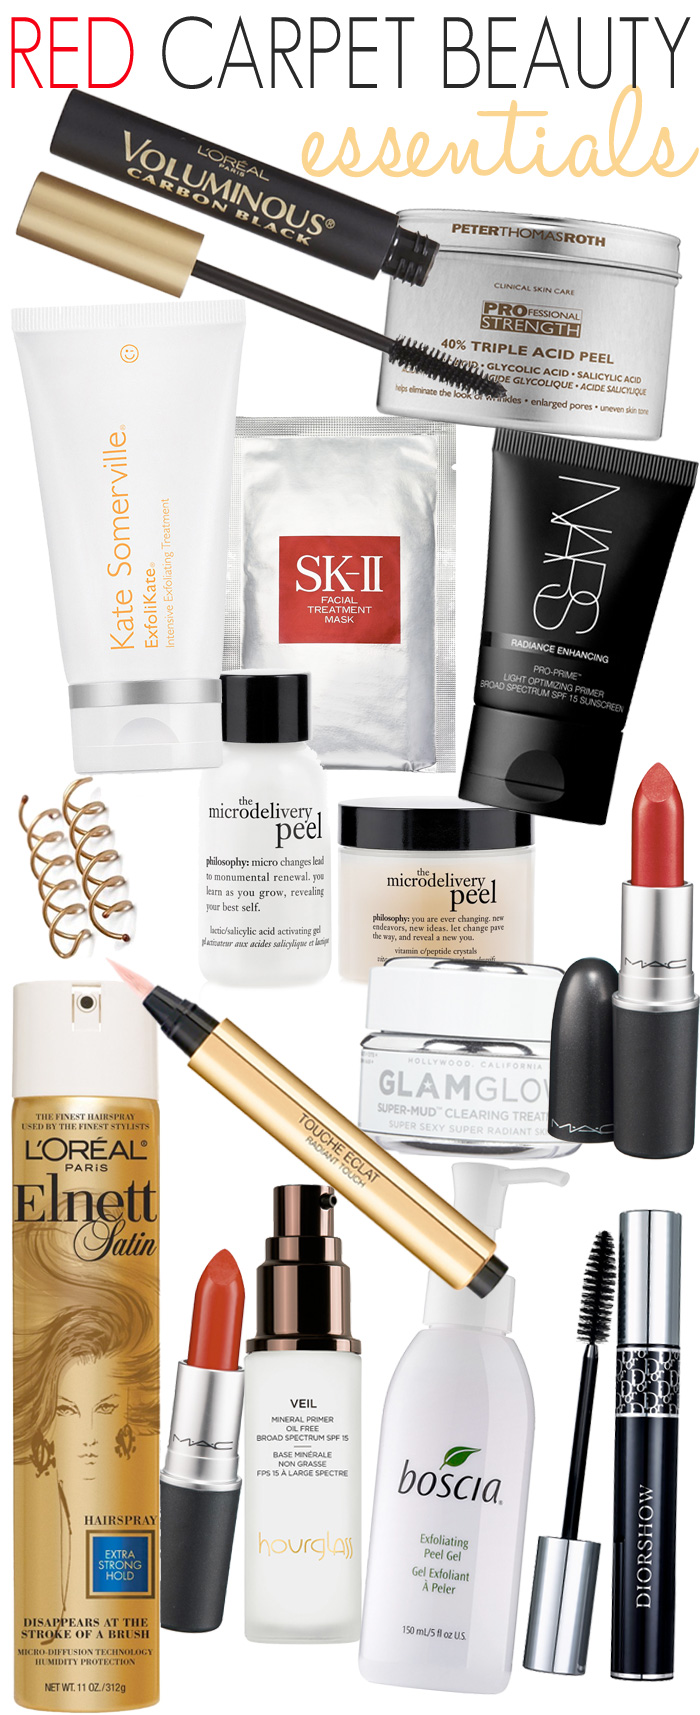 Red Carpet Beauty Essentials